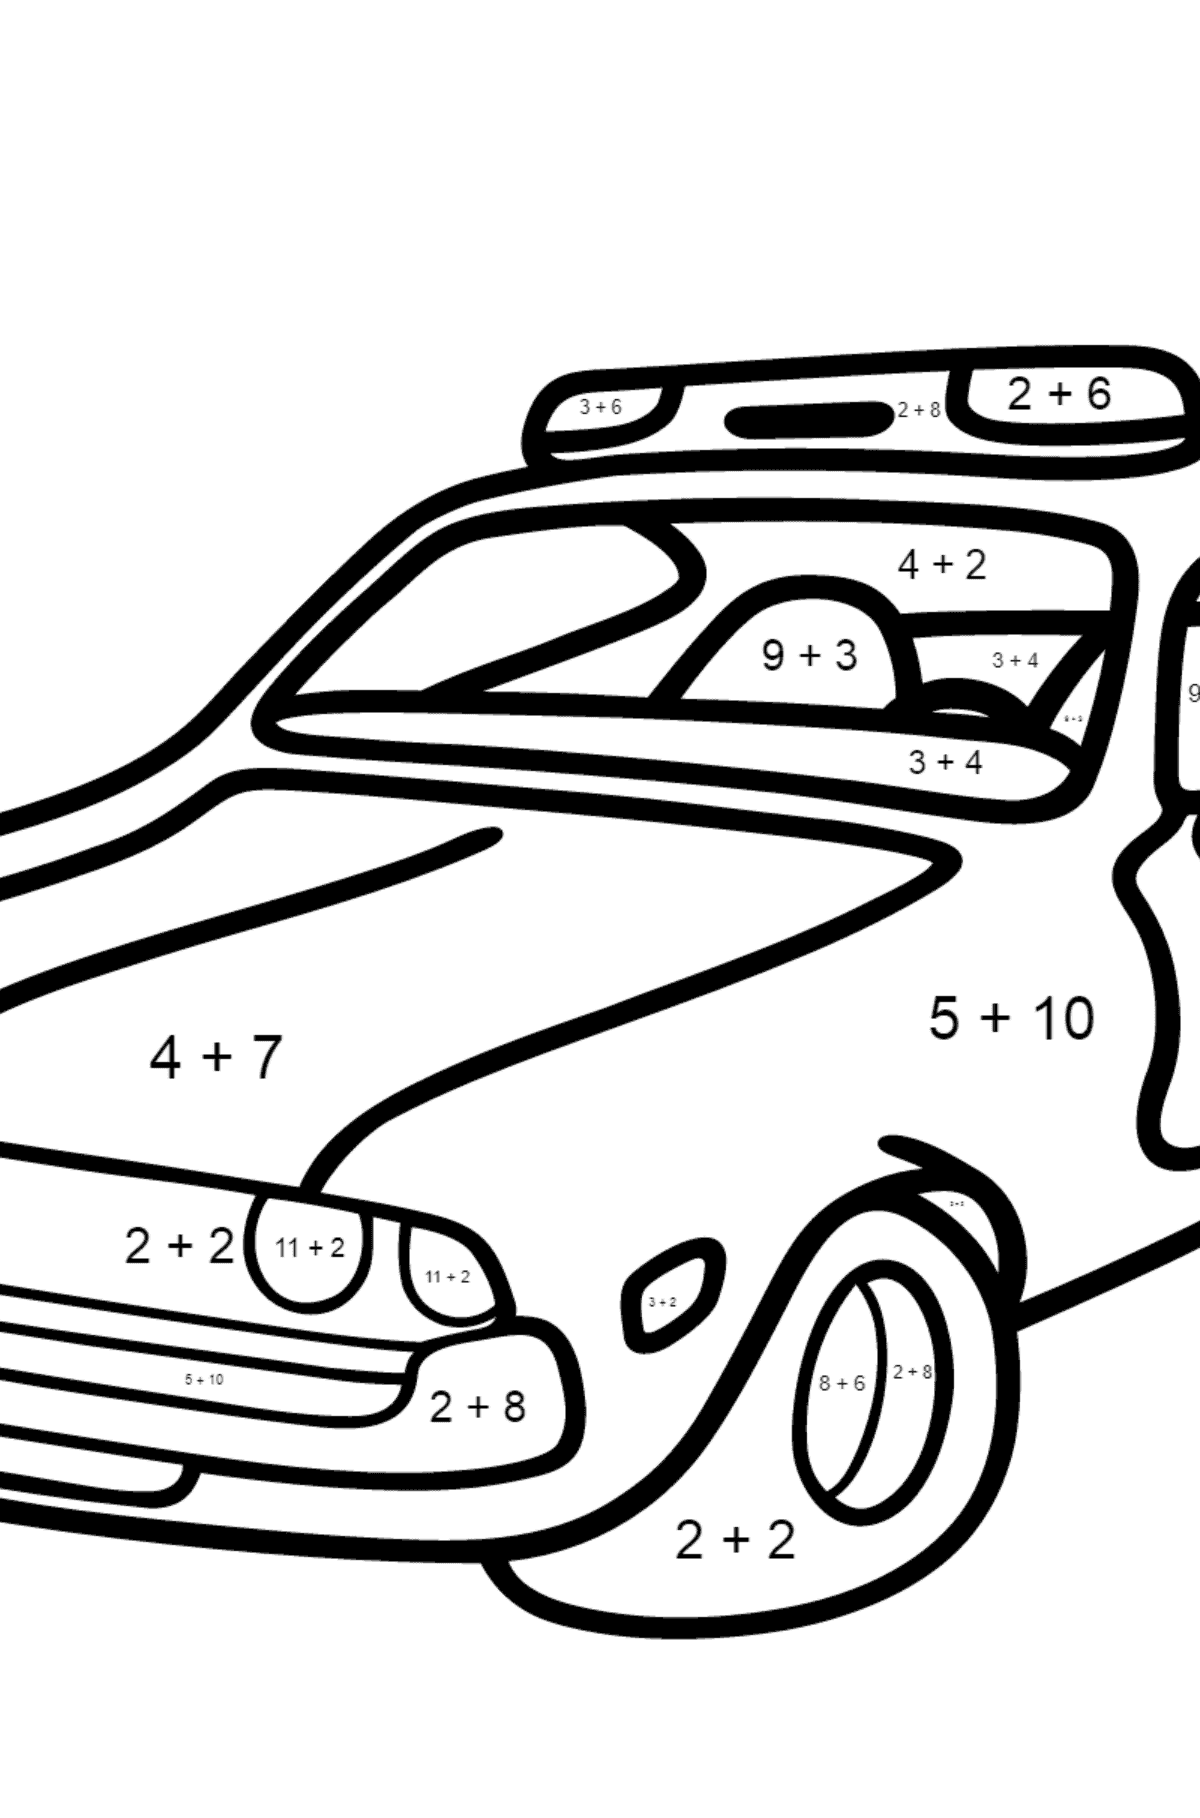 Coloring Page - A Dark Gray Police Car for Children  - Color by Number Addition